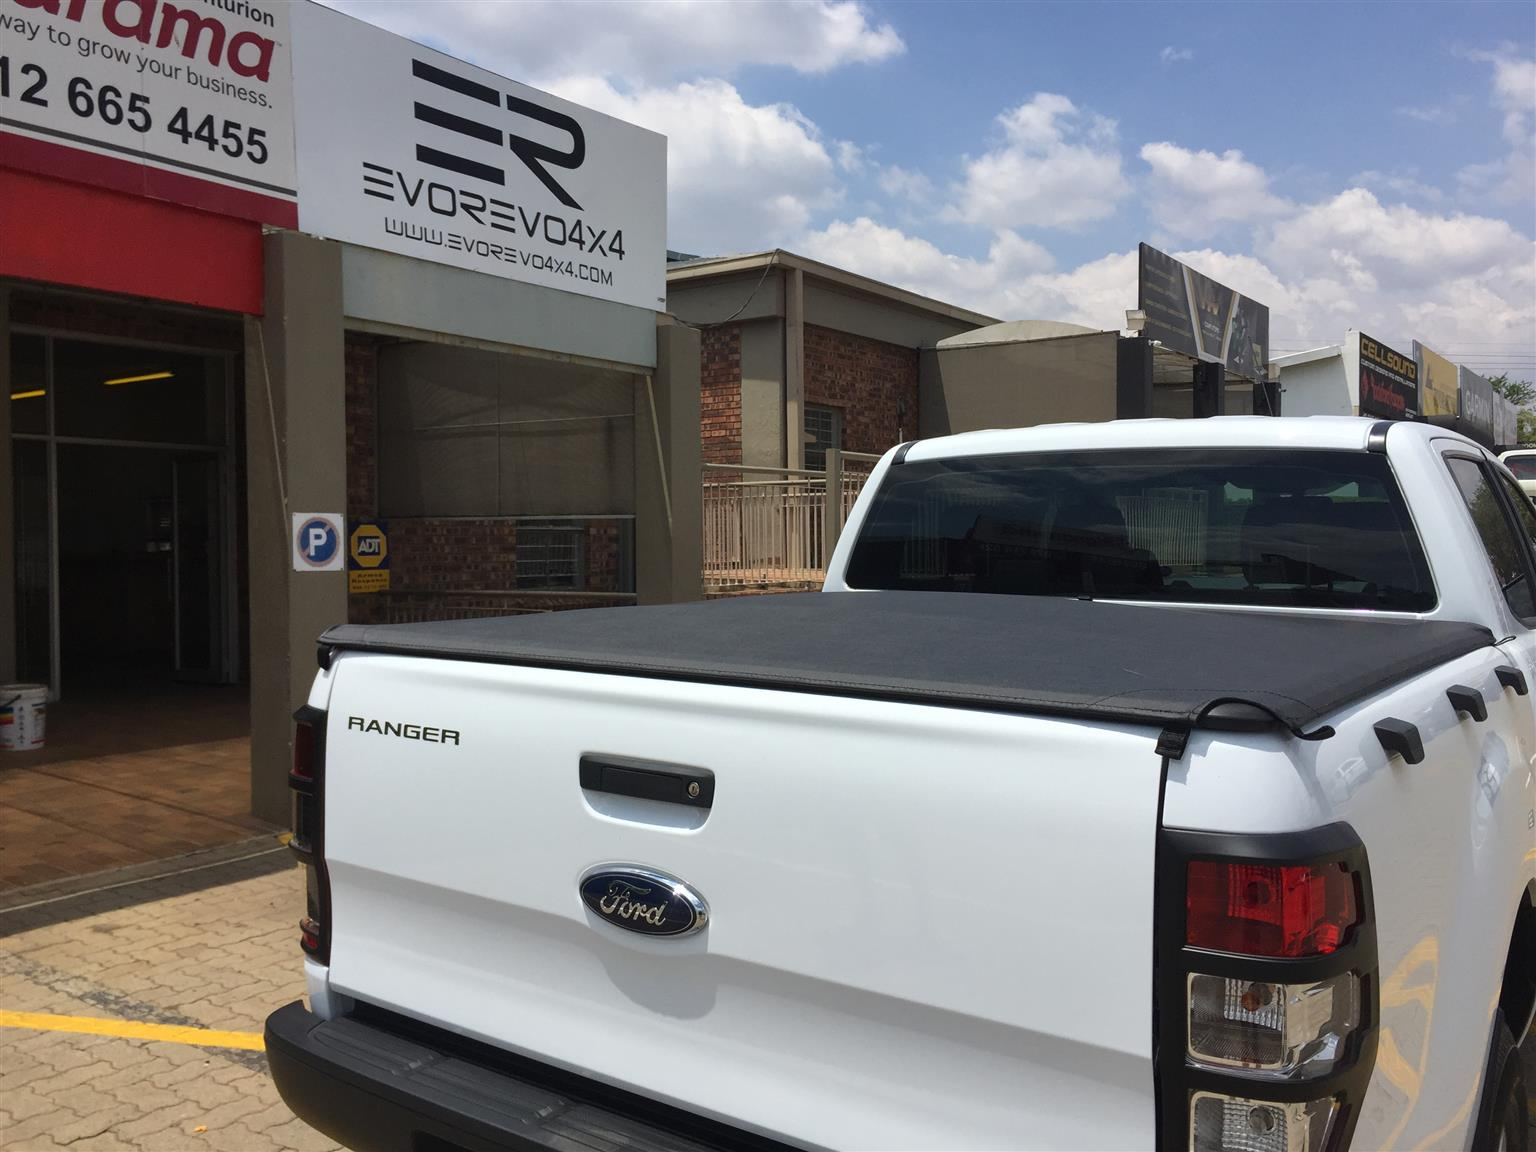 Tonneau covers For all bakkies available